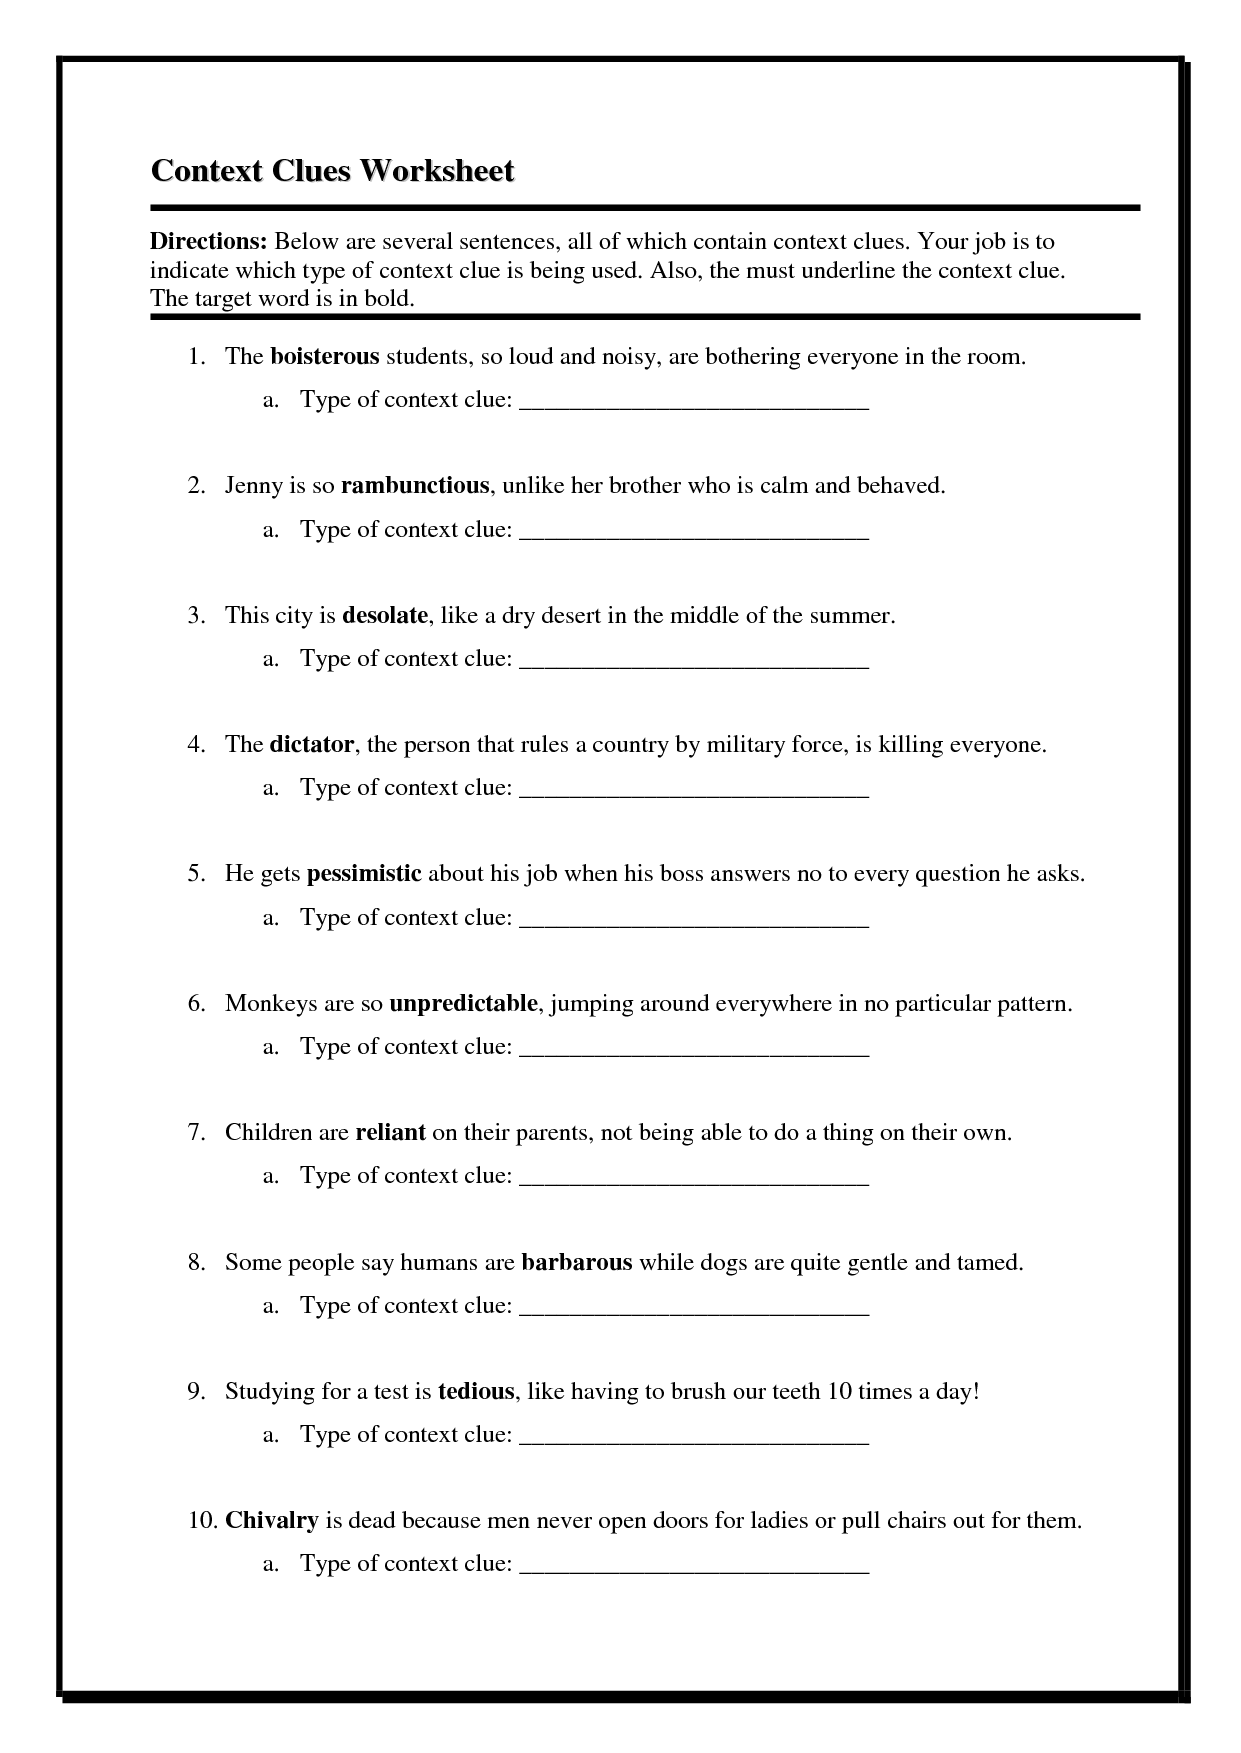 12 Best Images Of Context Clues Worksheets 4th Grade